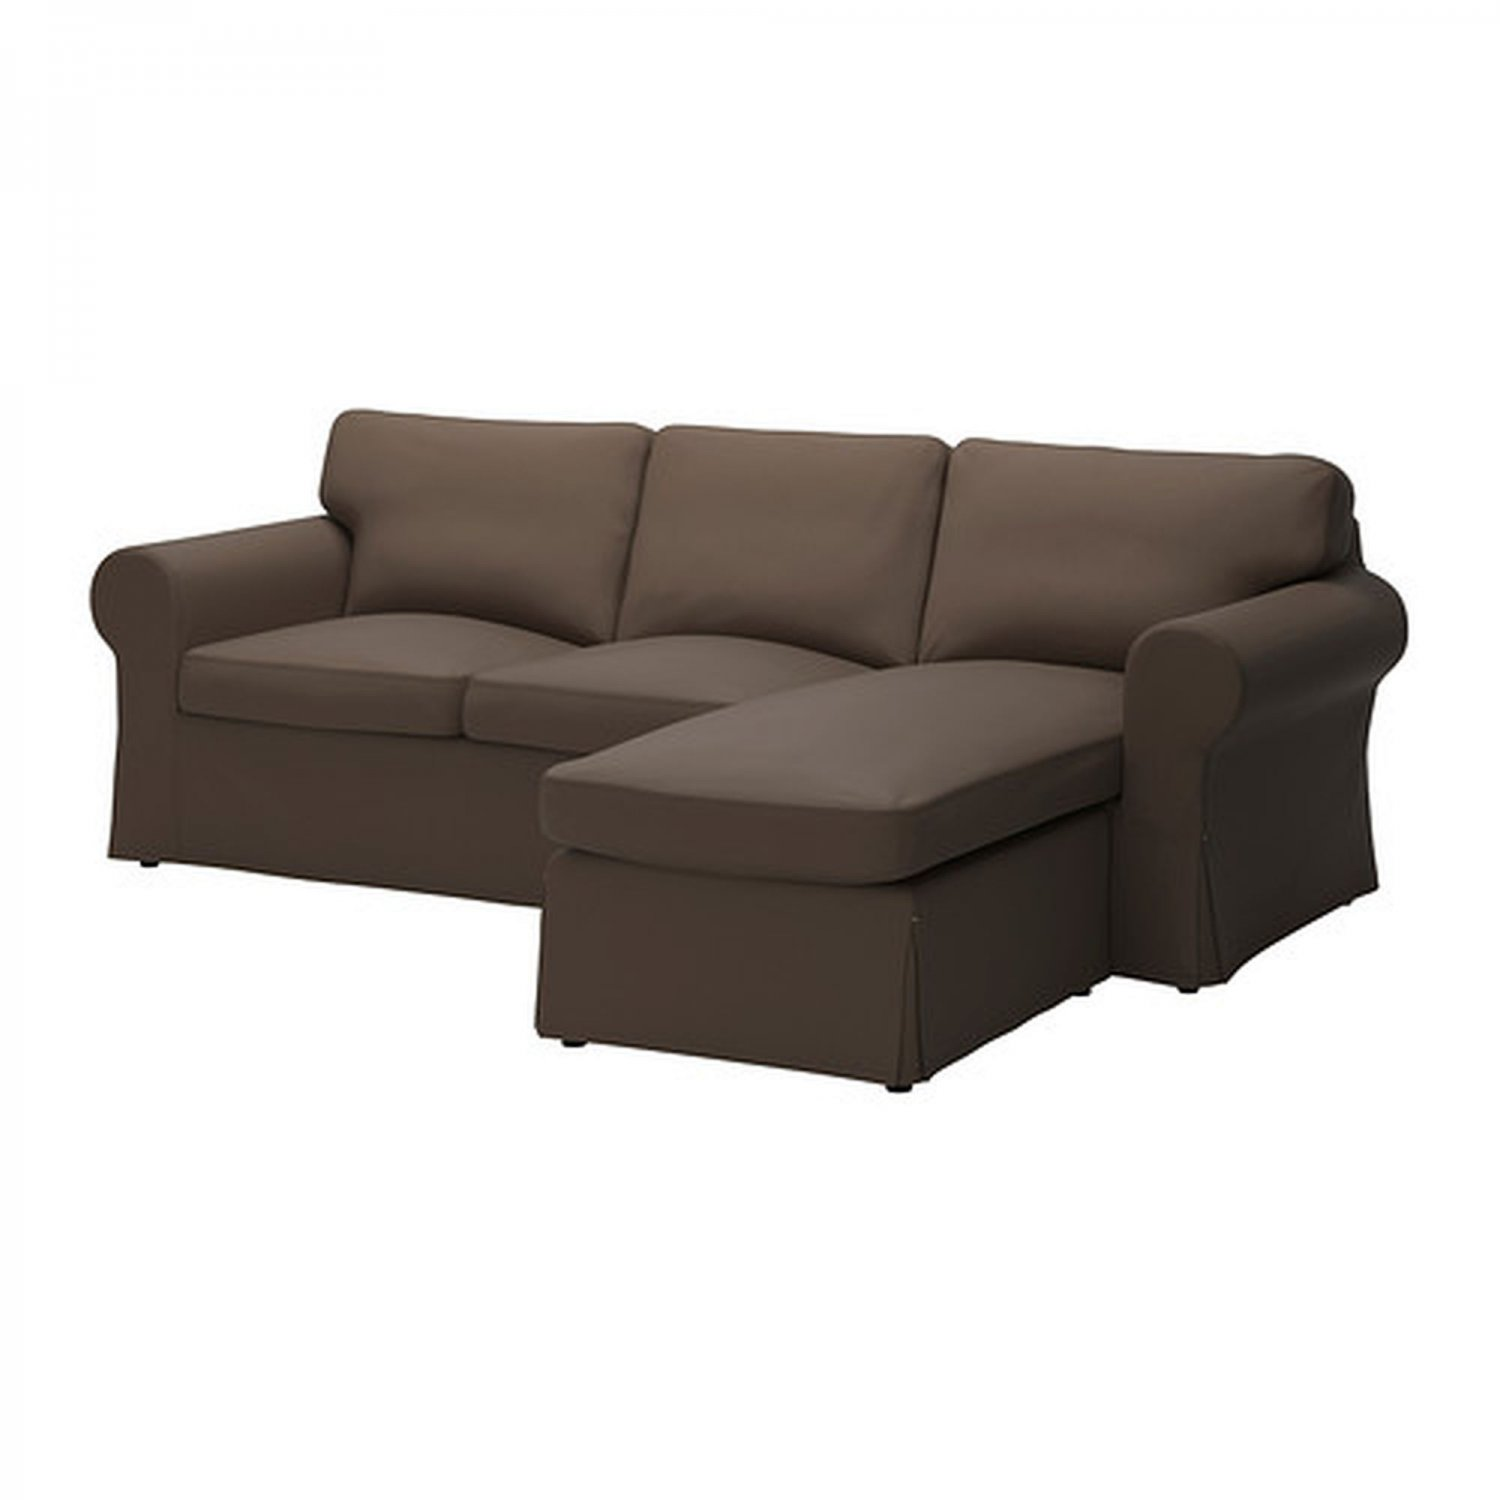 Ikea Ektorp Loveseat With Chaise Slipcover 3 Seat